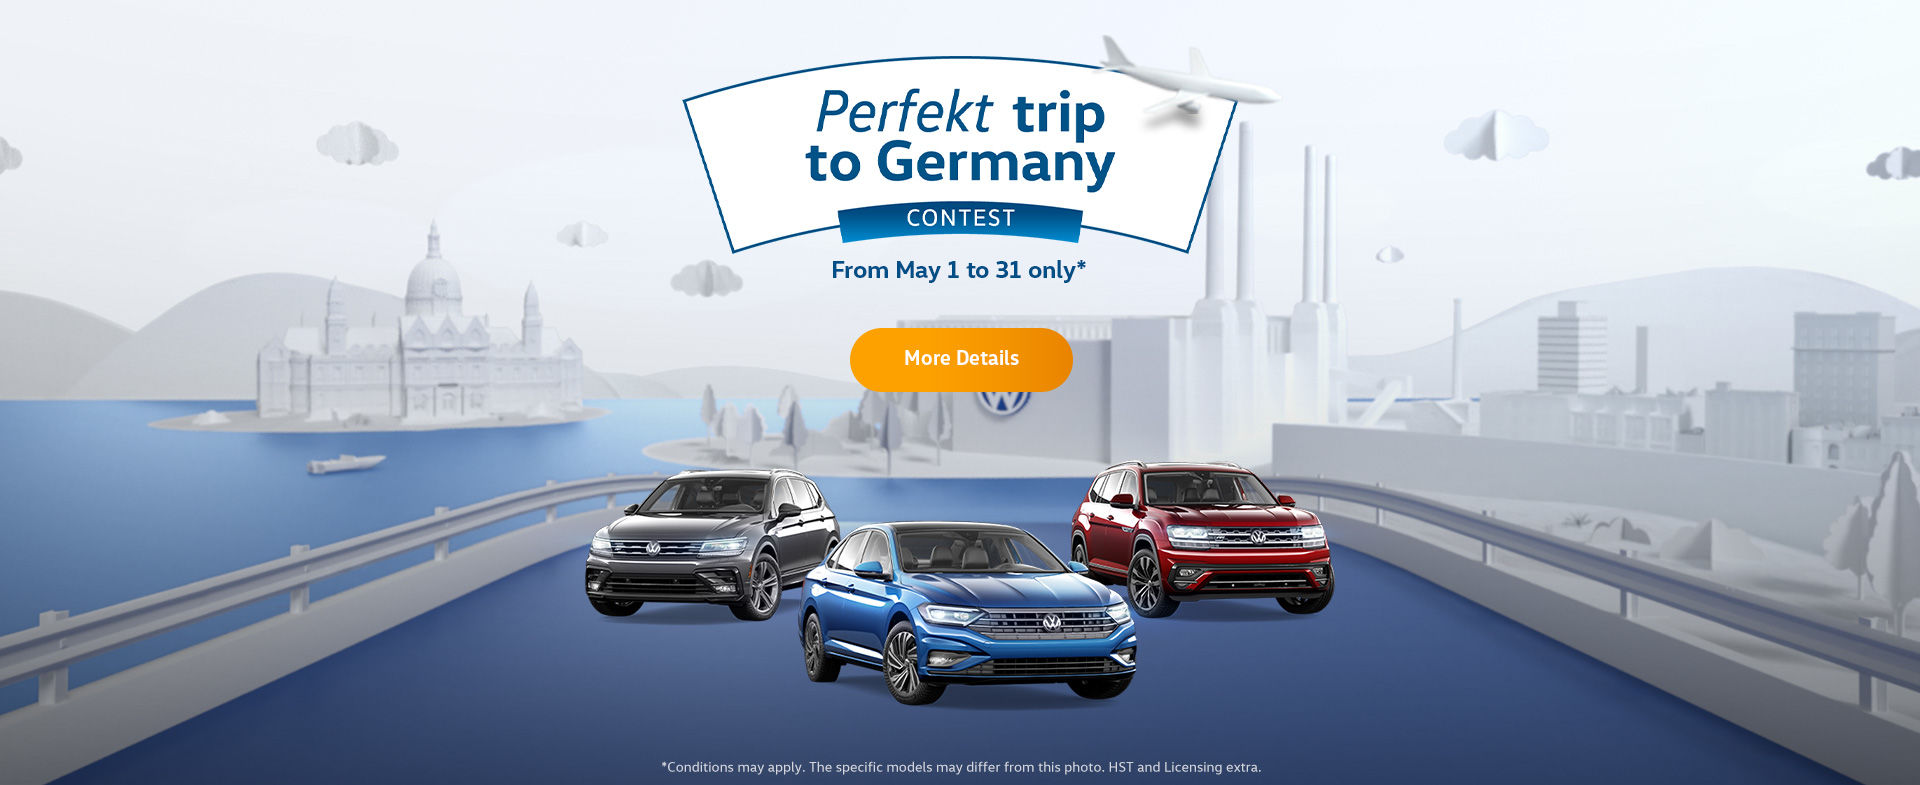 Perfekt Trip to Germany Contest